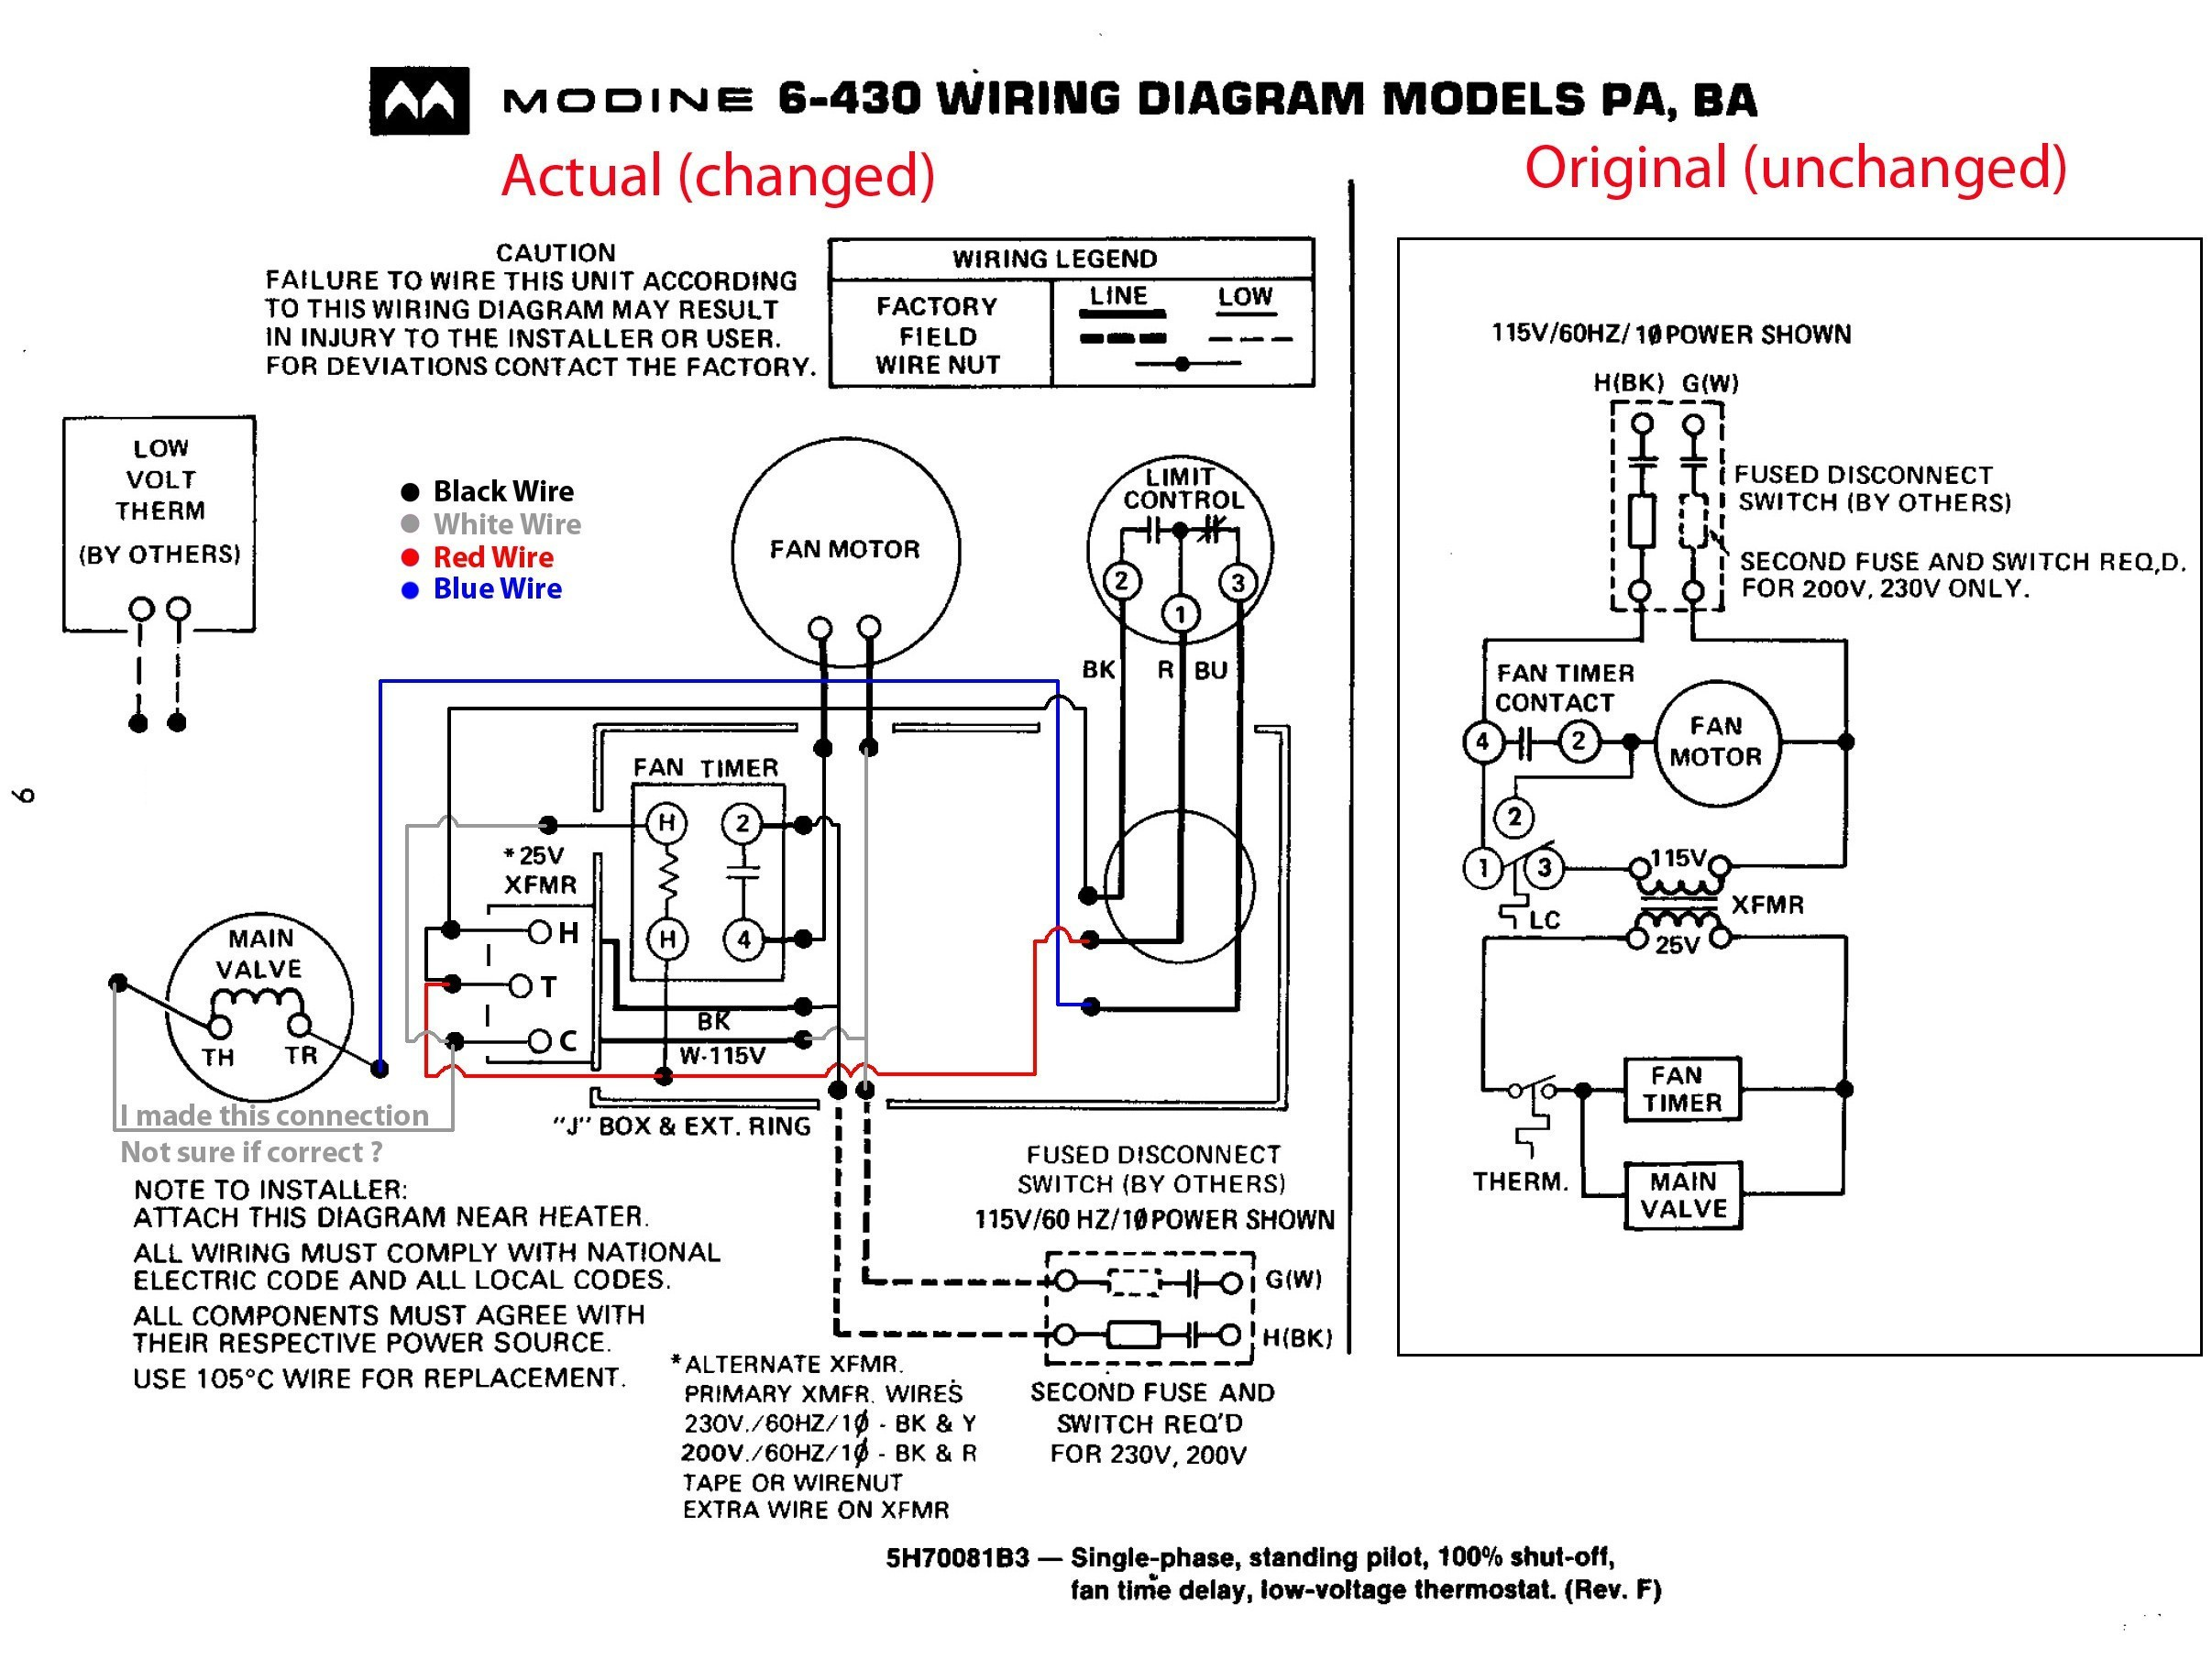 rotary motor diagram wiring diagram games inspirationa got a wiring diagram from   u2013 my